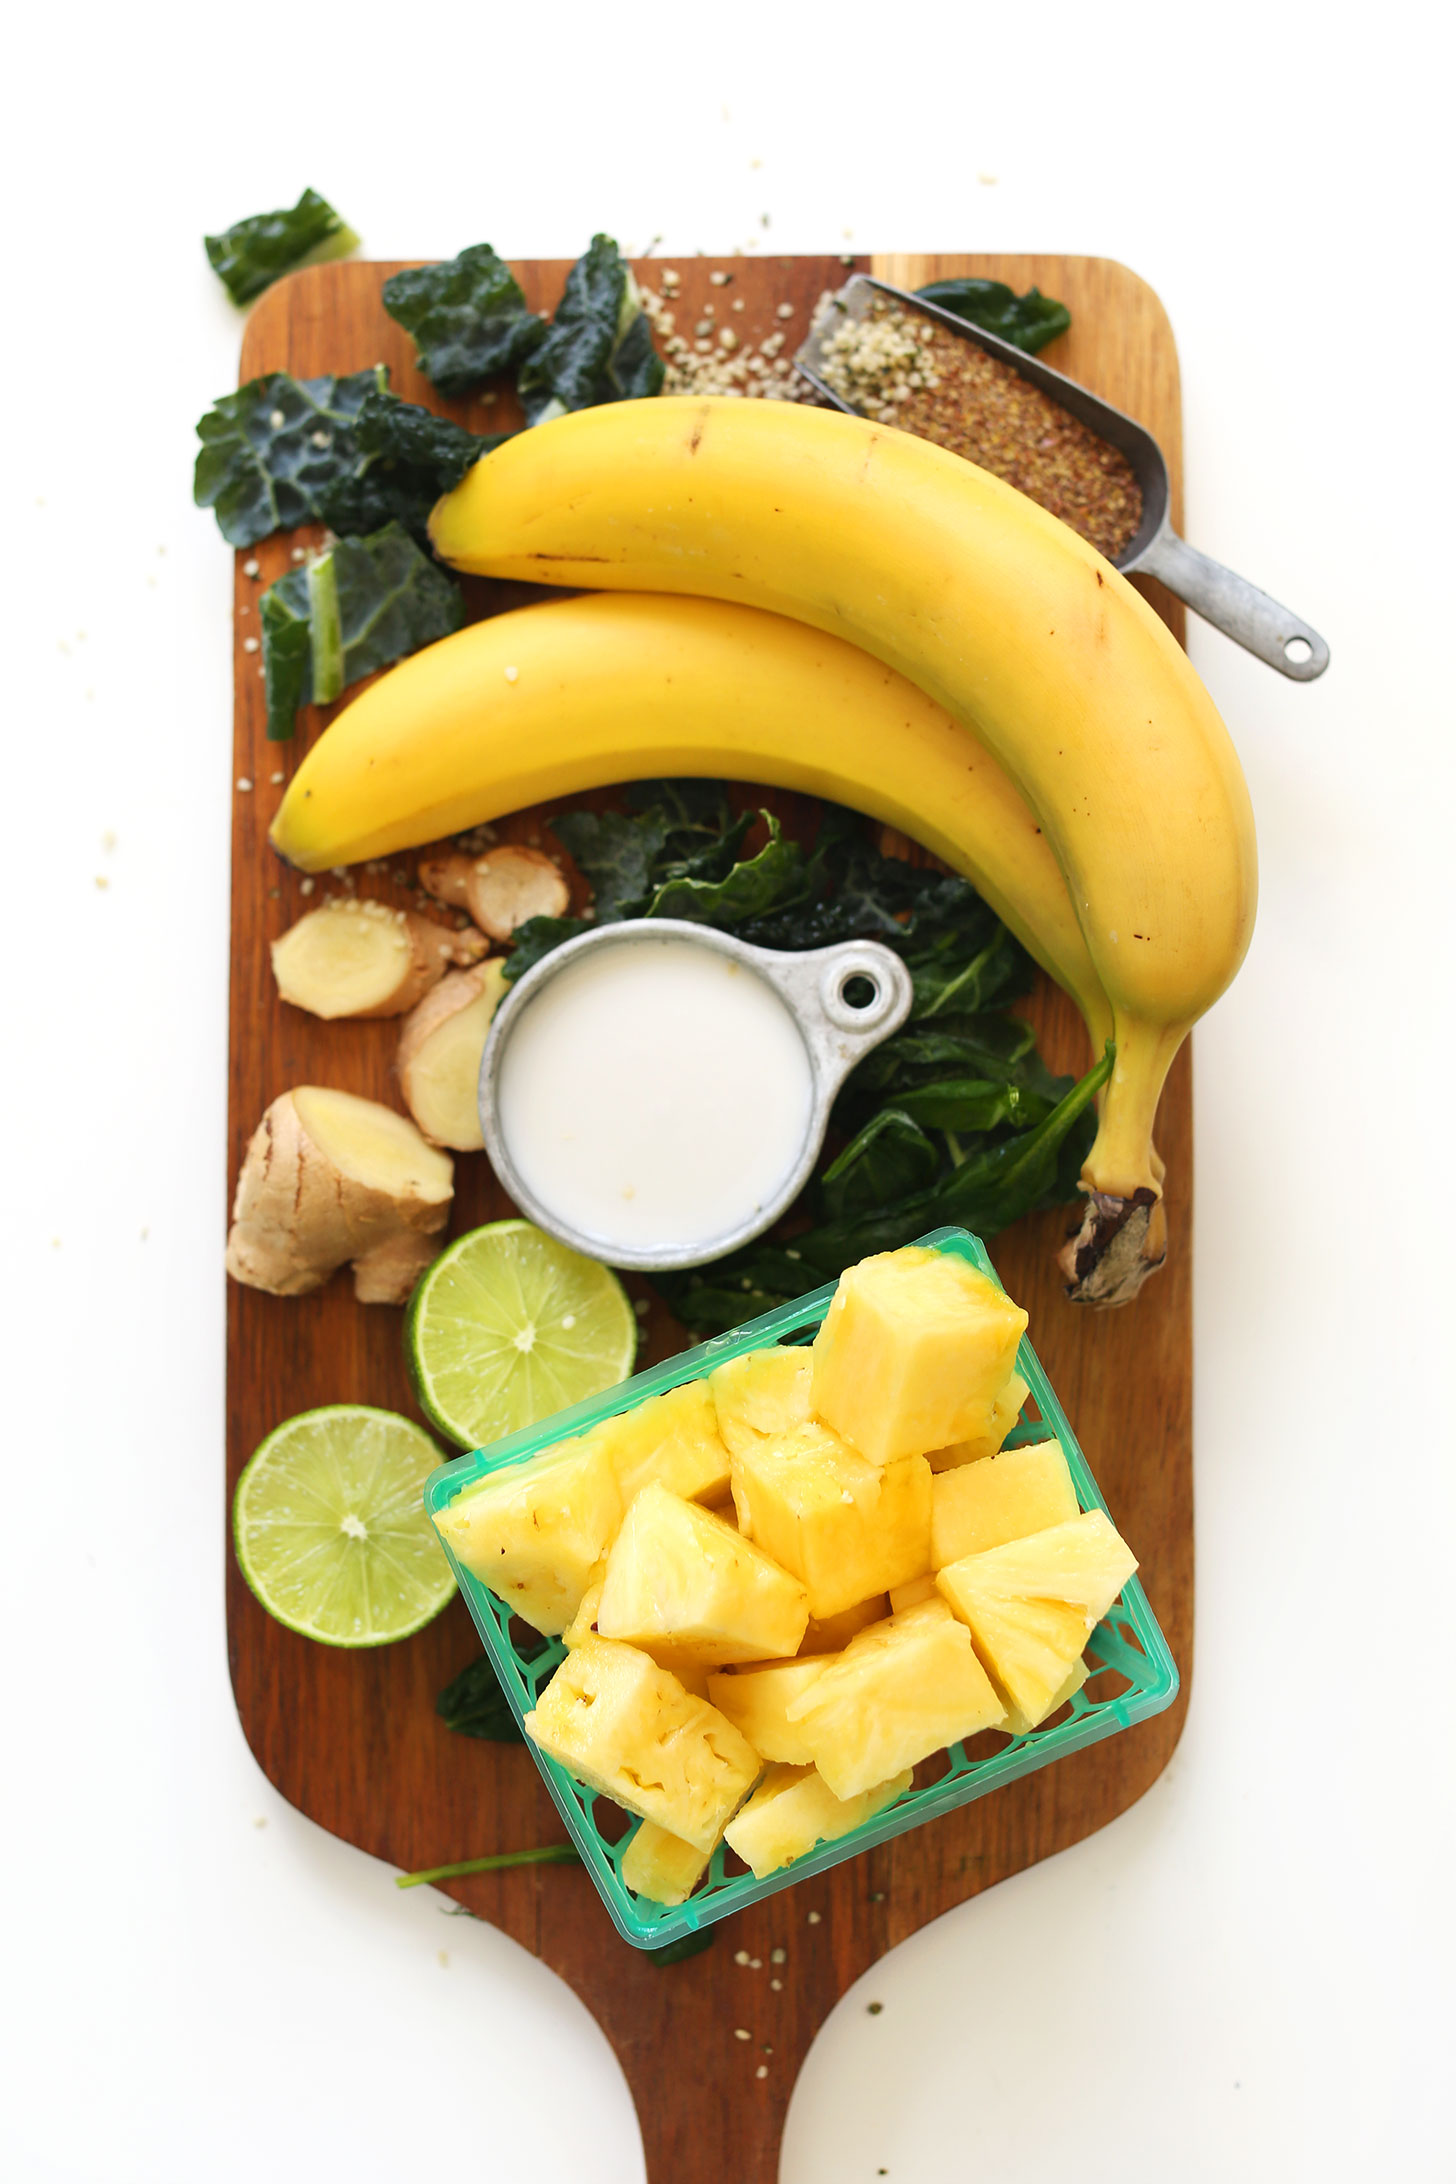 Wood board with pineapple, banana, nut milk, lime, ginger, kale, hemp seeds, and flaxseed meal